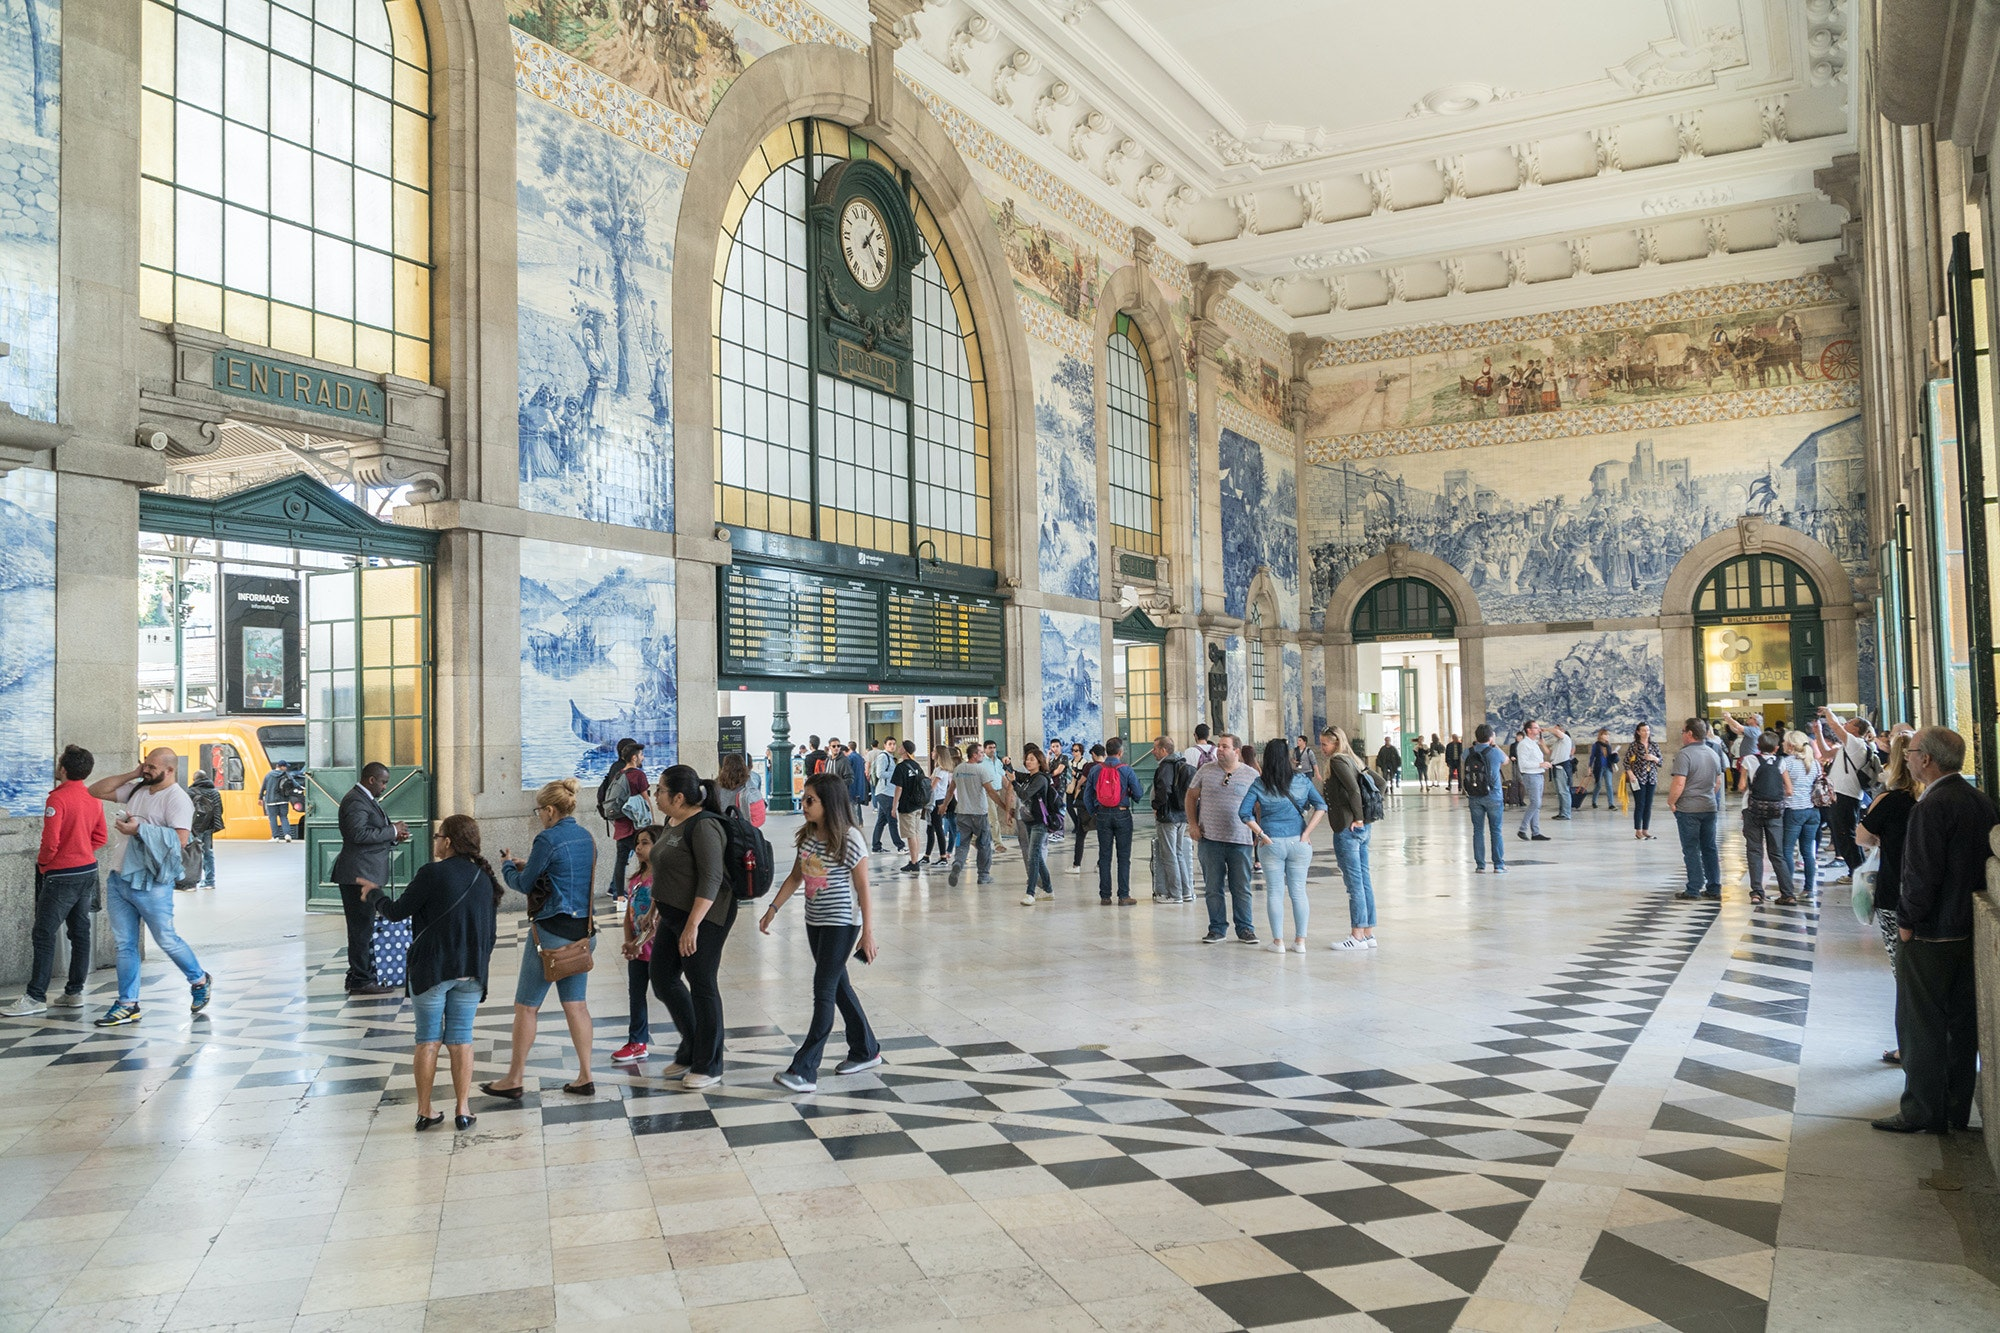 The painted-tile murals at São Bento station tell stories of Portuguese history.